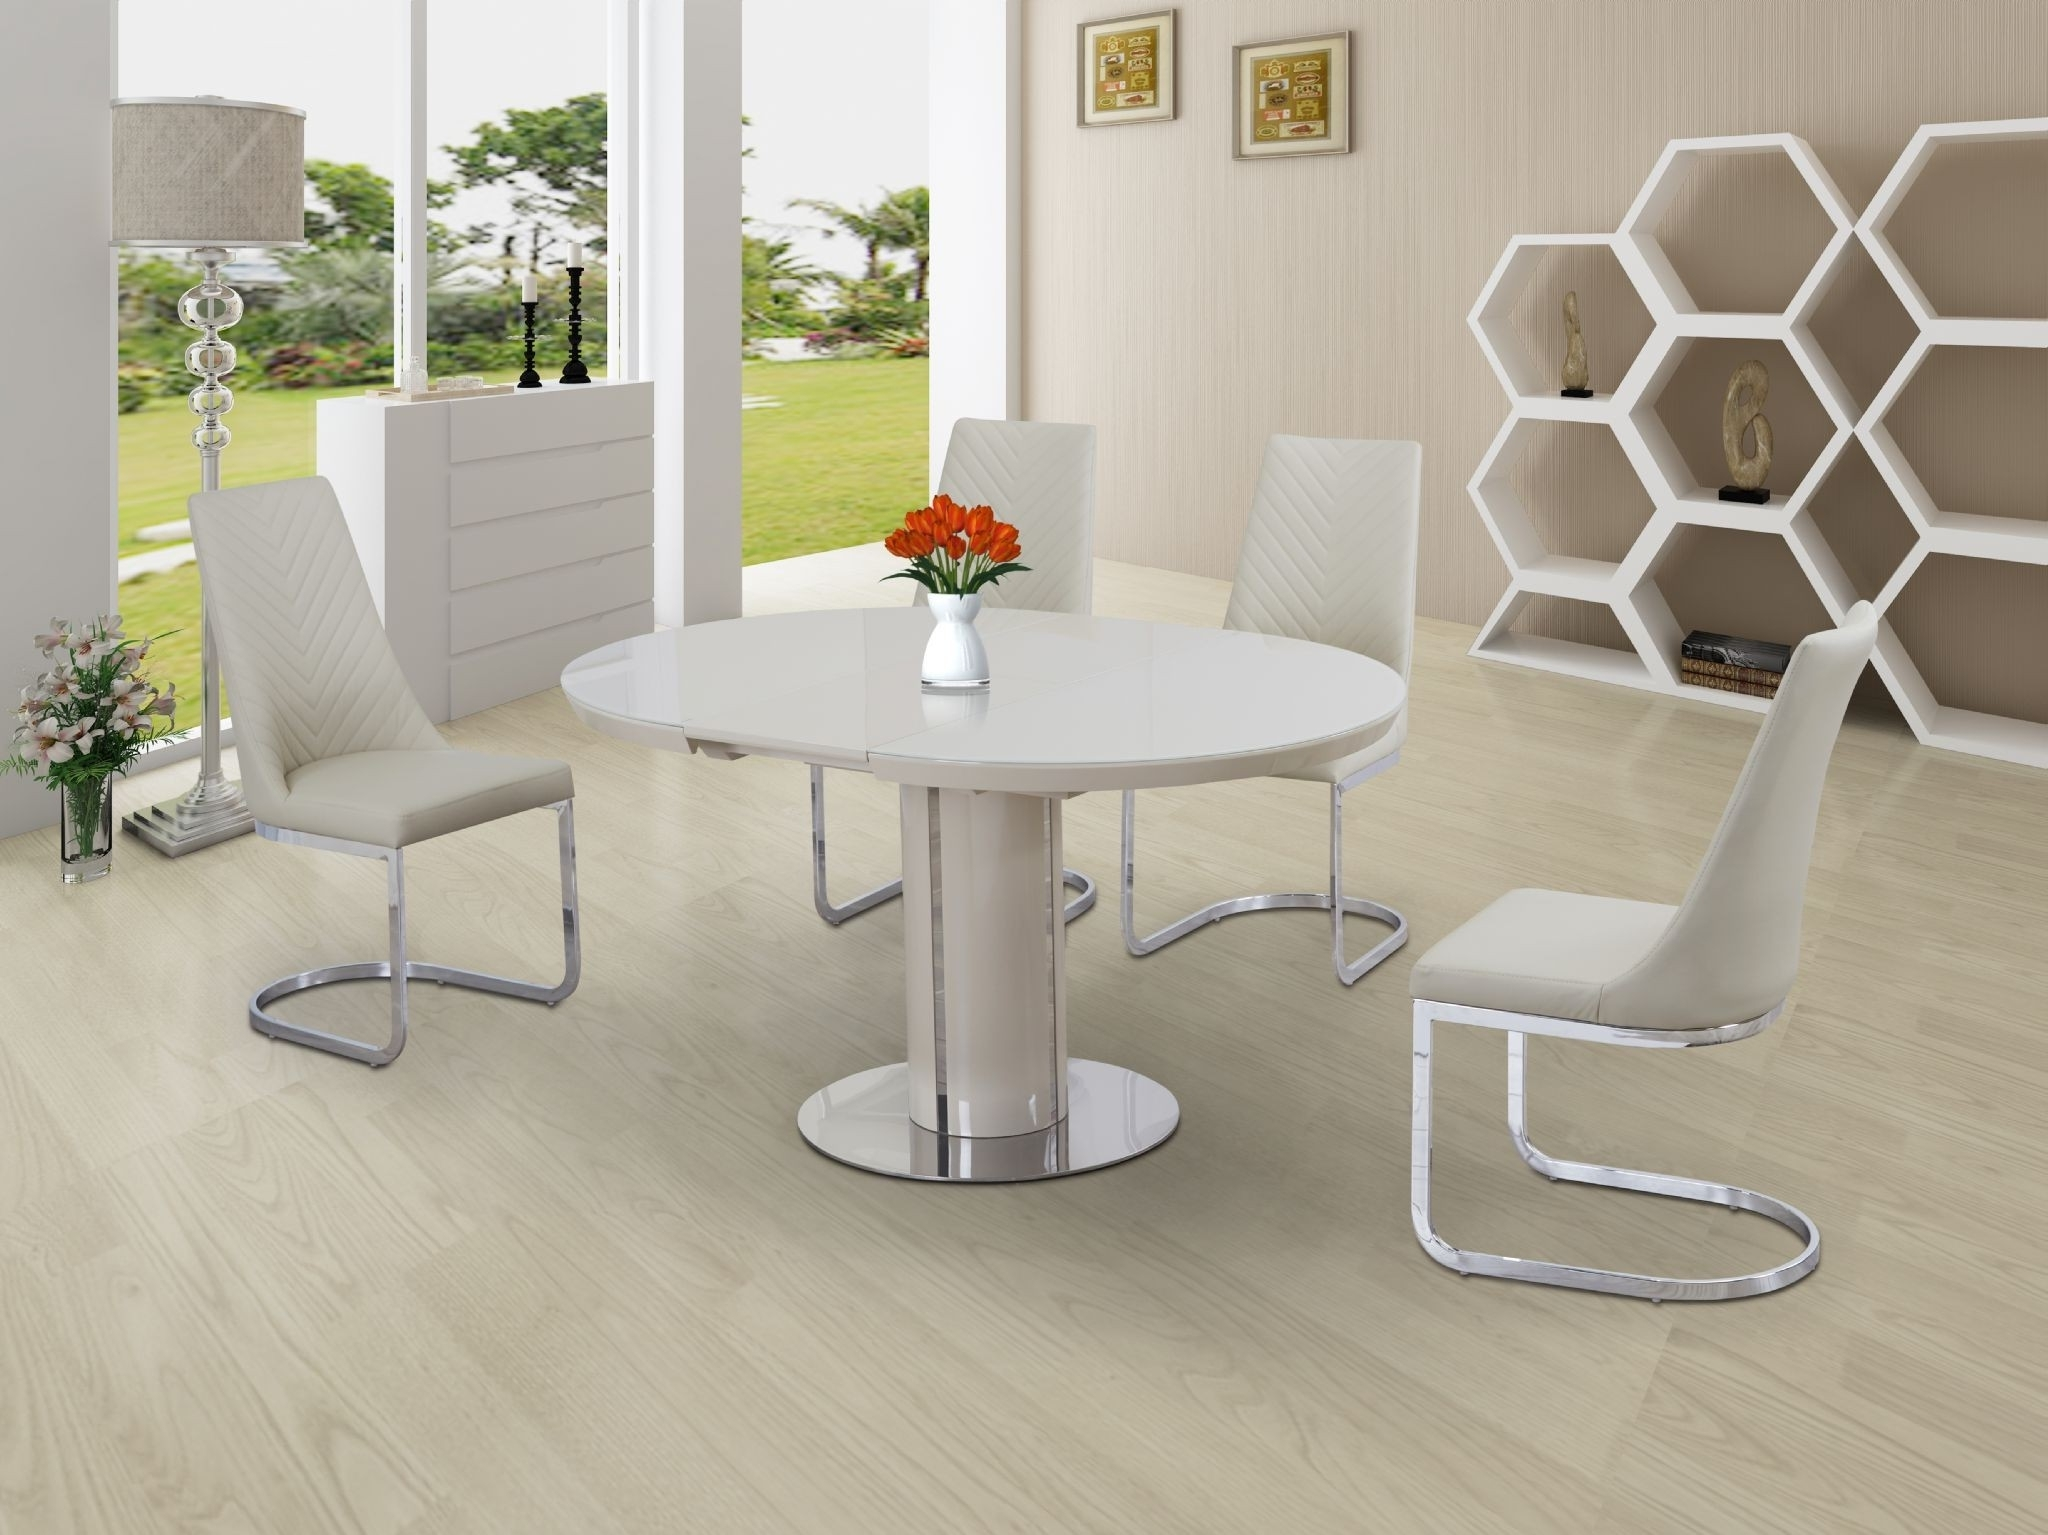 Most Popular High Gloss Cream Dining Tables Inside Buy Annular Cream High Gloss Extending Dining Table (View 3 of 25)